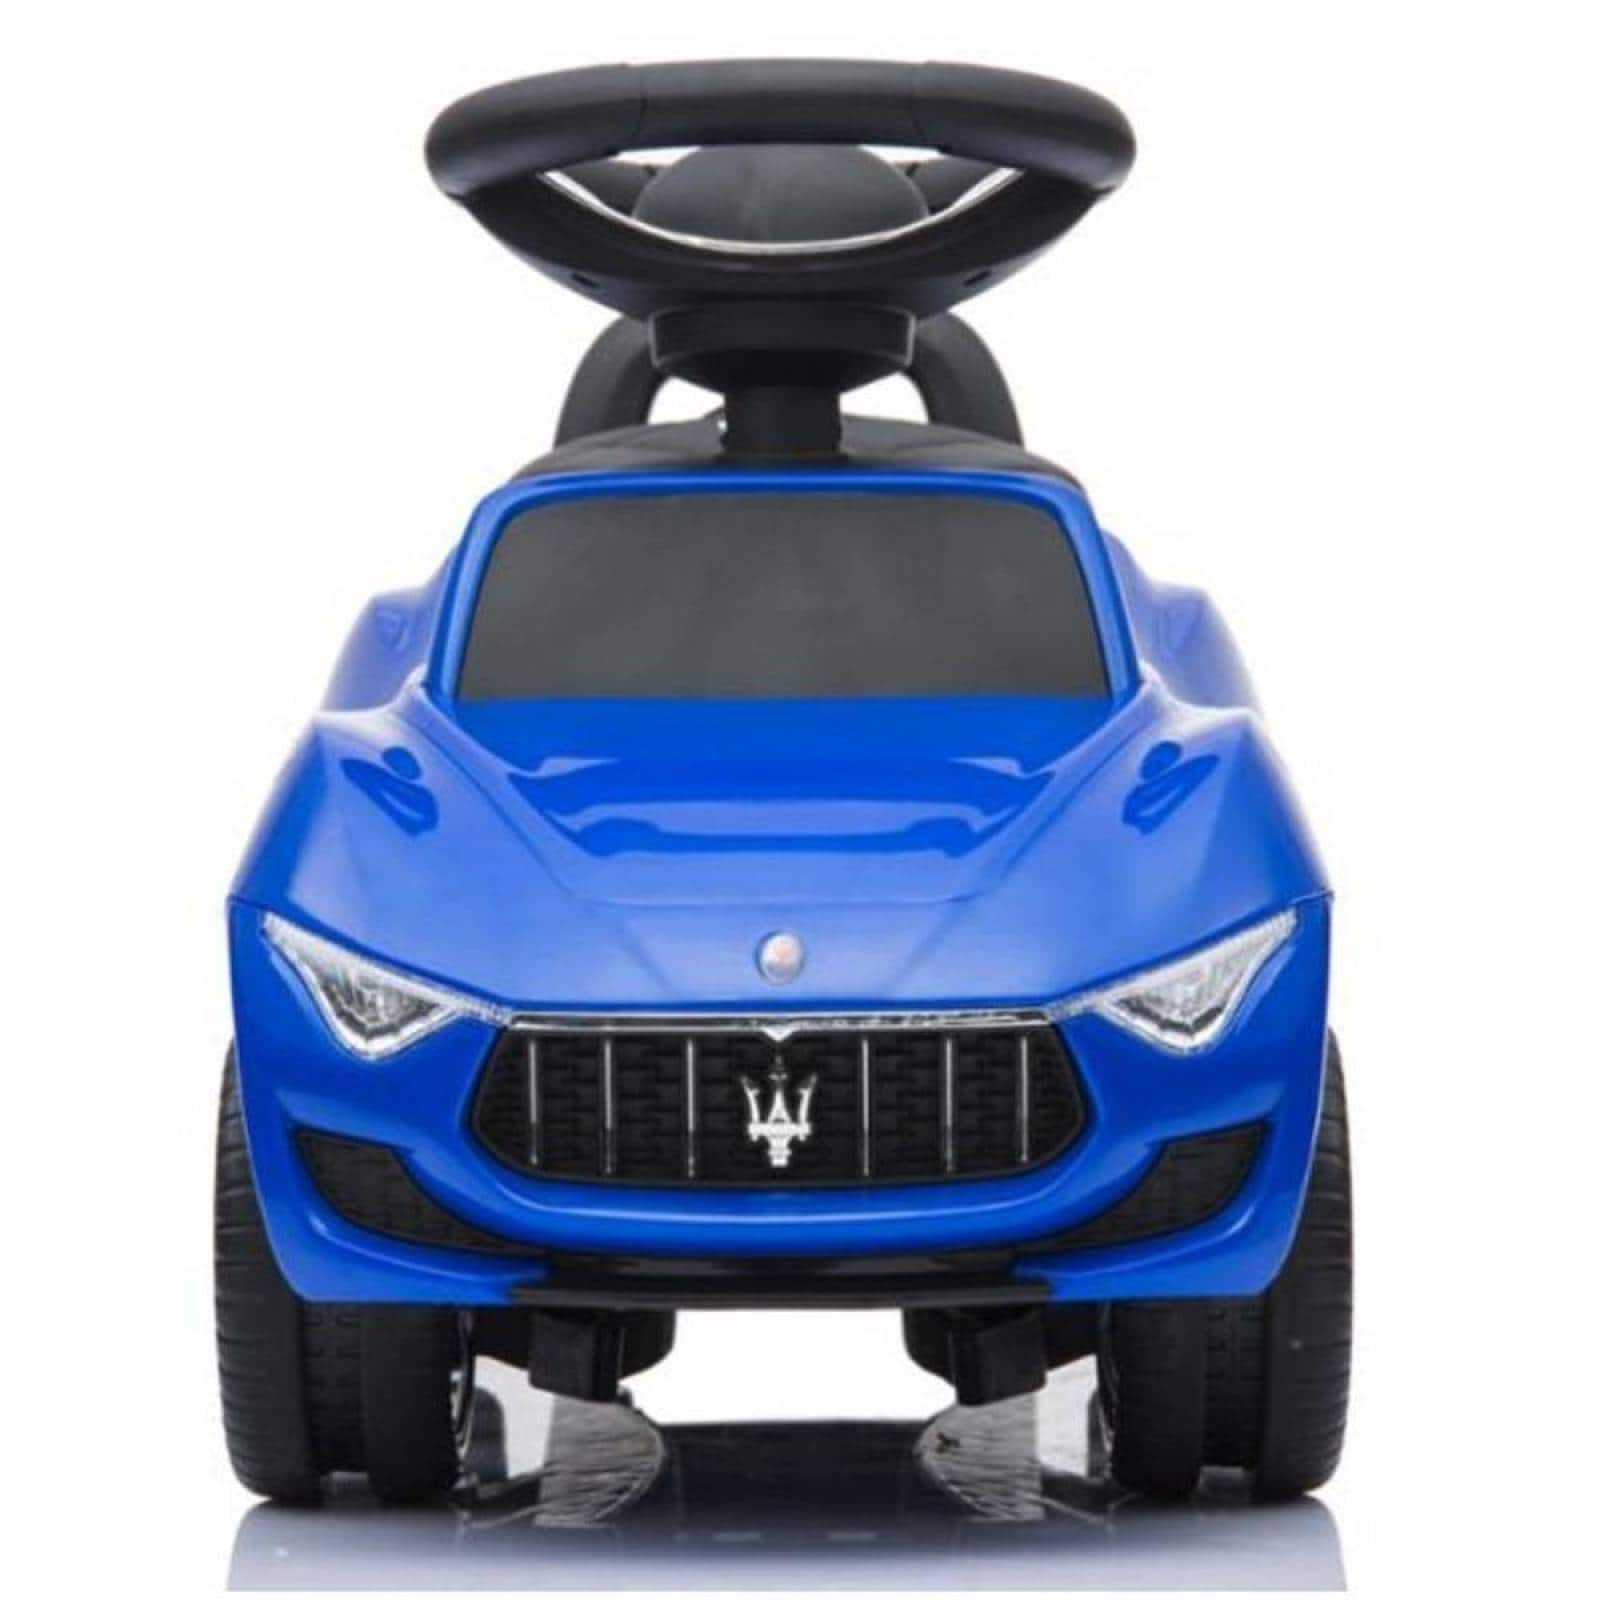 Maserati montable electrico push car Best Ride on Cars (CL) Azul